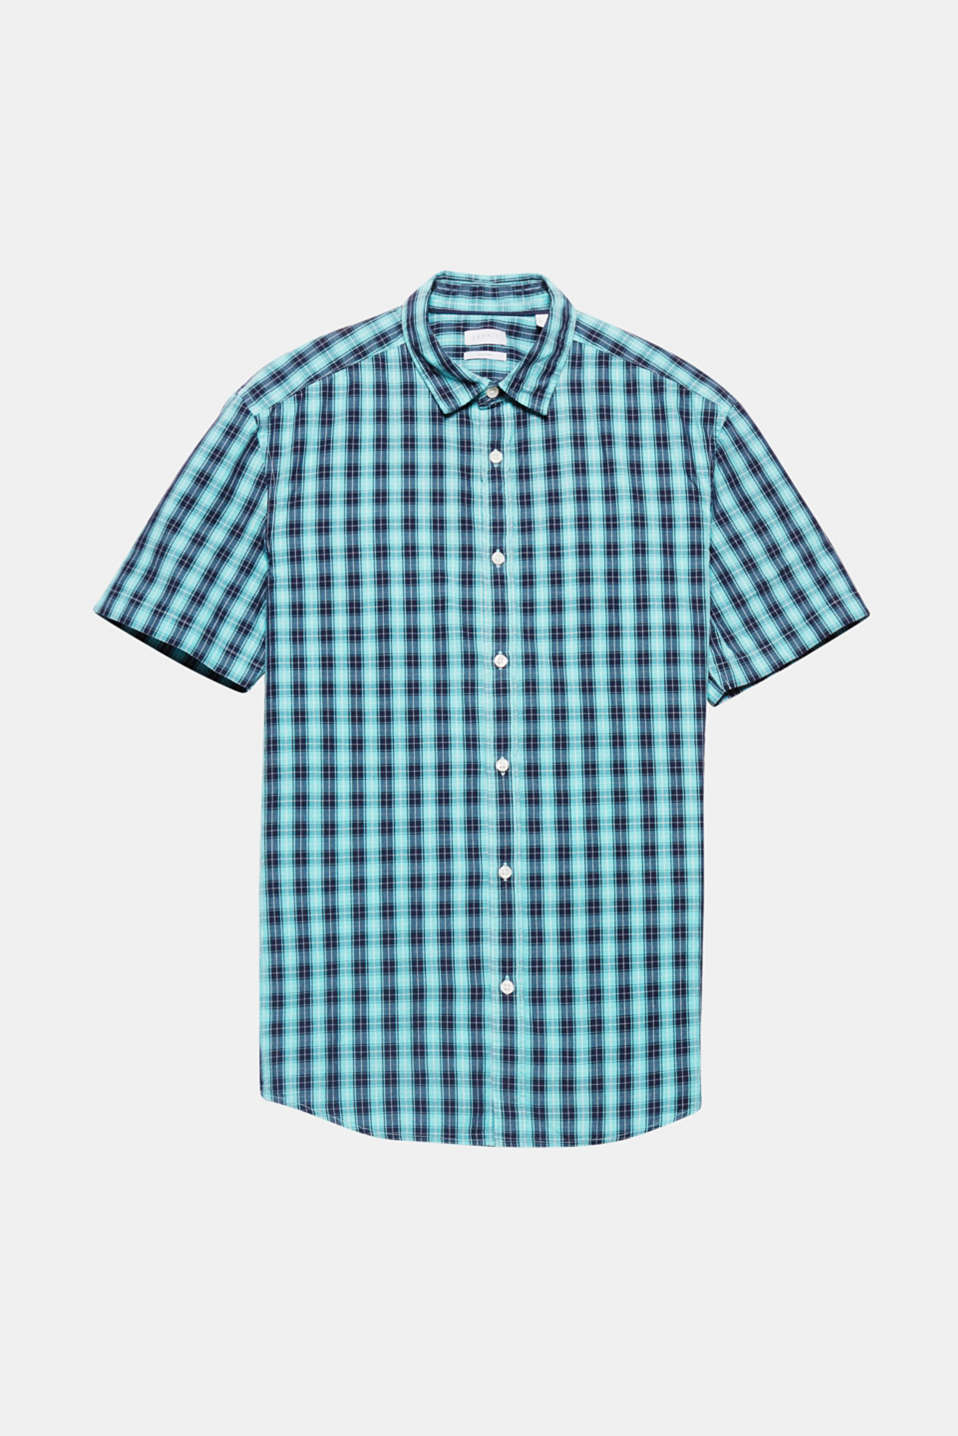 The striking check pattern gives this short sleeve shirt made of pure cotton a distinctive look.